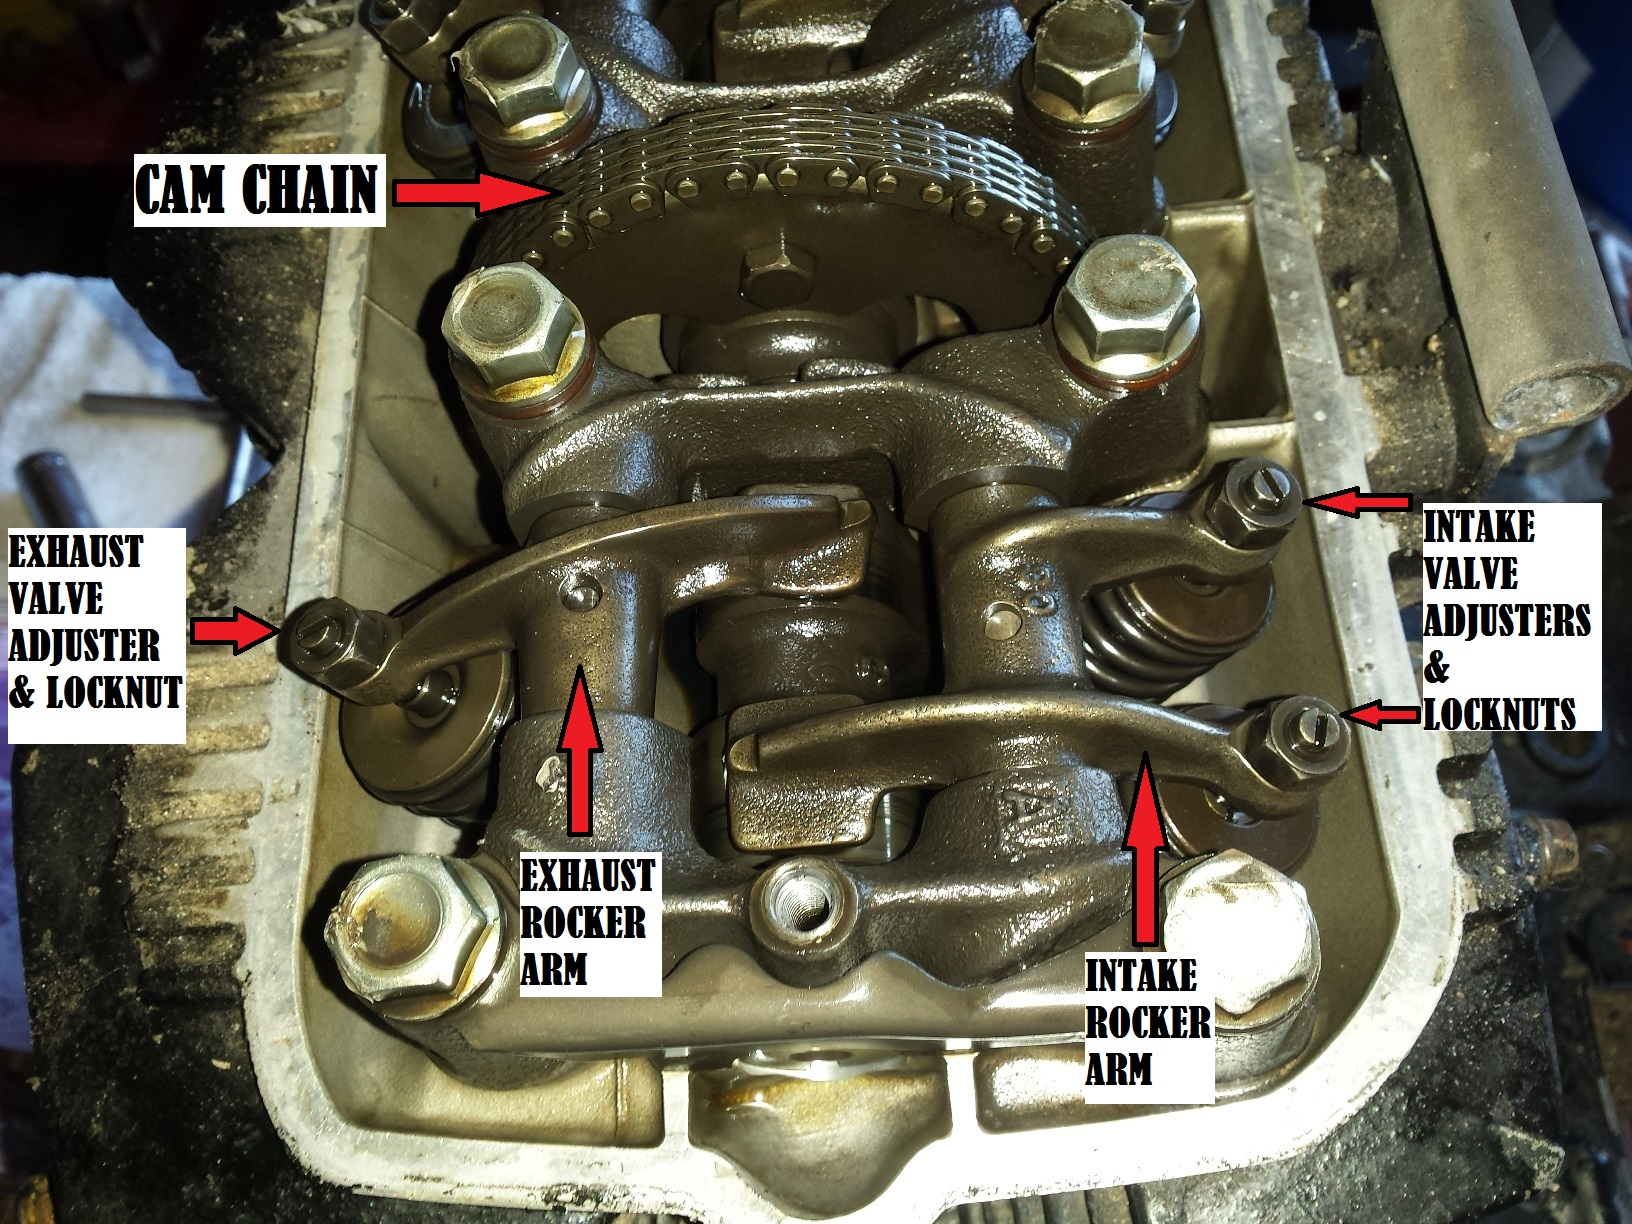 5idc1 Buick Regal Custom Will Not Start in addition 61A4168A0A0 as well Diagnosing Faults In Automatic Transmission further Honda Cm400 Valve Adjustment furthermore Honda vt 1100 c shaddow 1986. on honda magna engine diagram